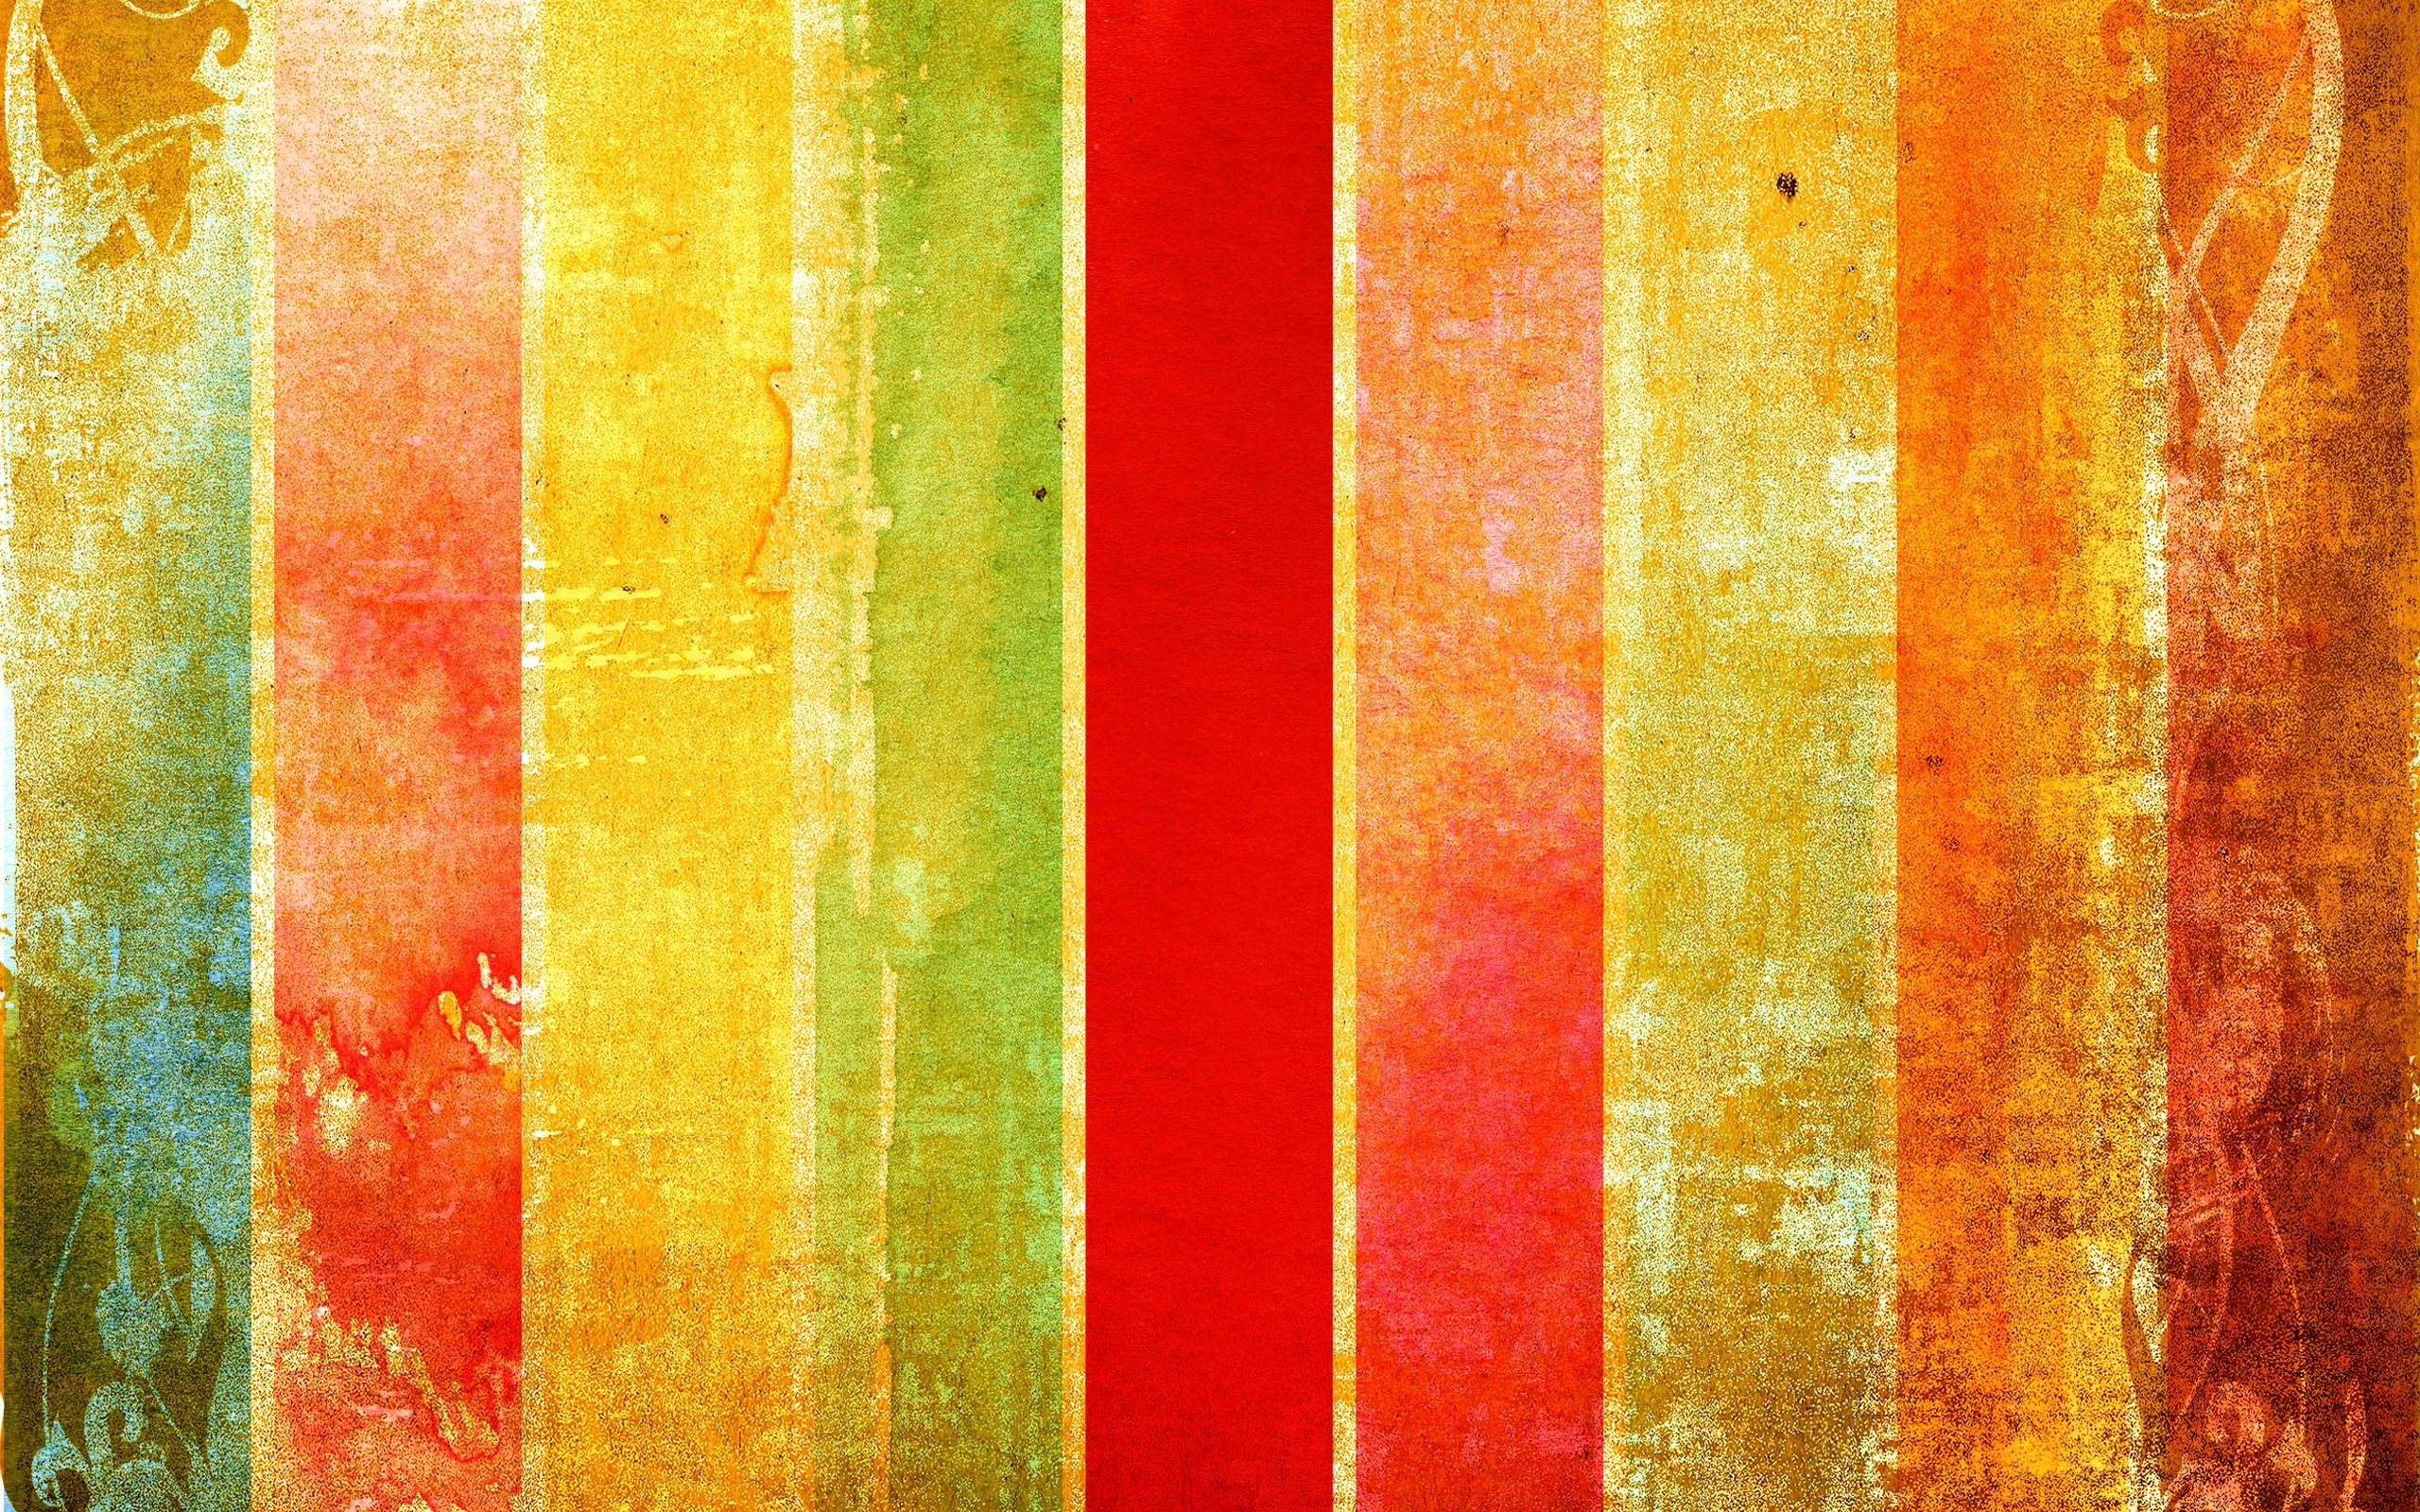 retro colorful background hd - photo #20